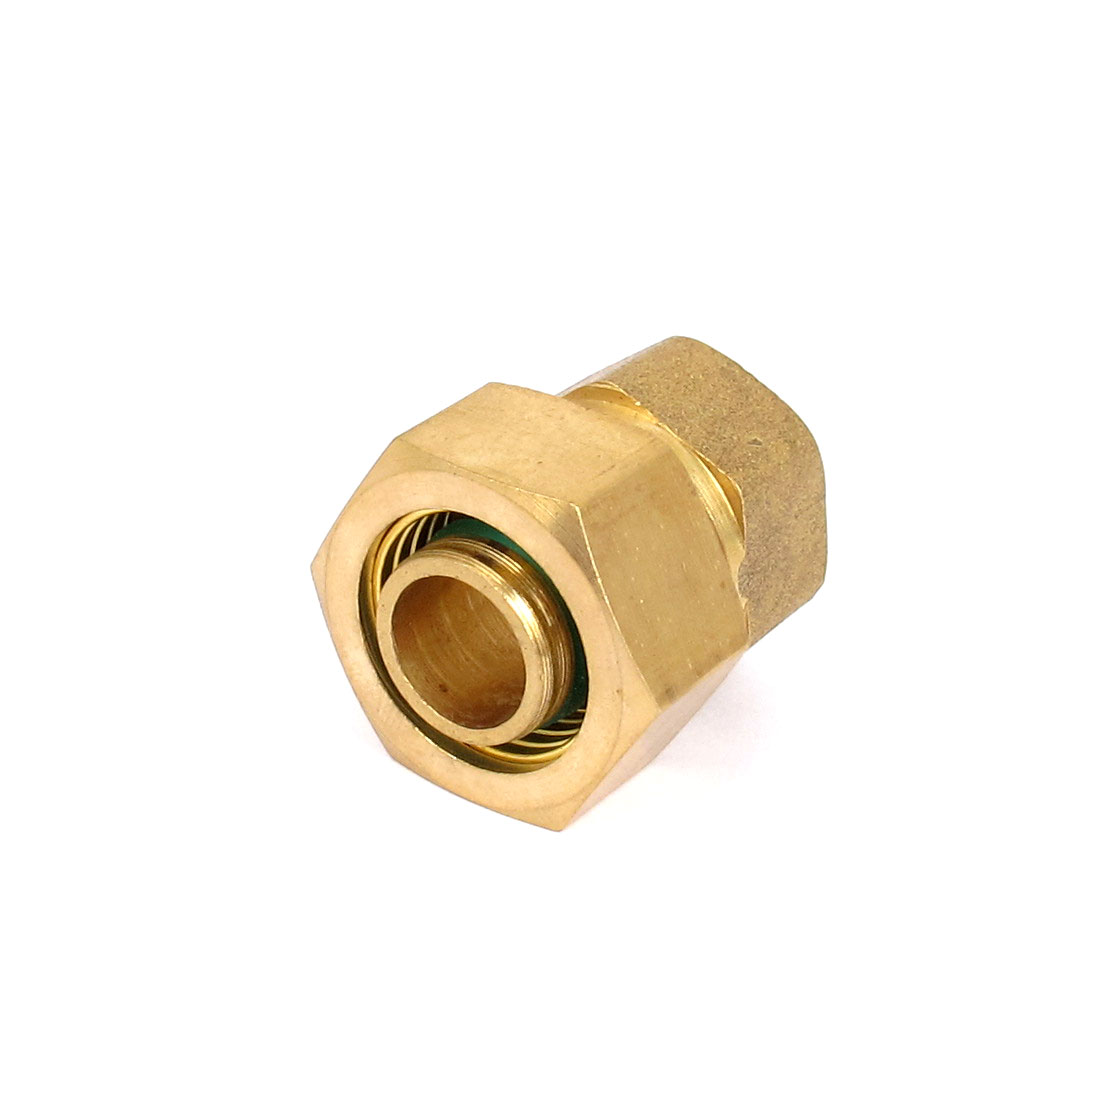 Gold Tone 1/2BSP Thread 16mm Air Hose Piping Pneumatic Quick Joint Connector Fitting Coupler